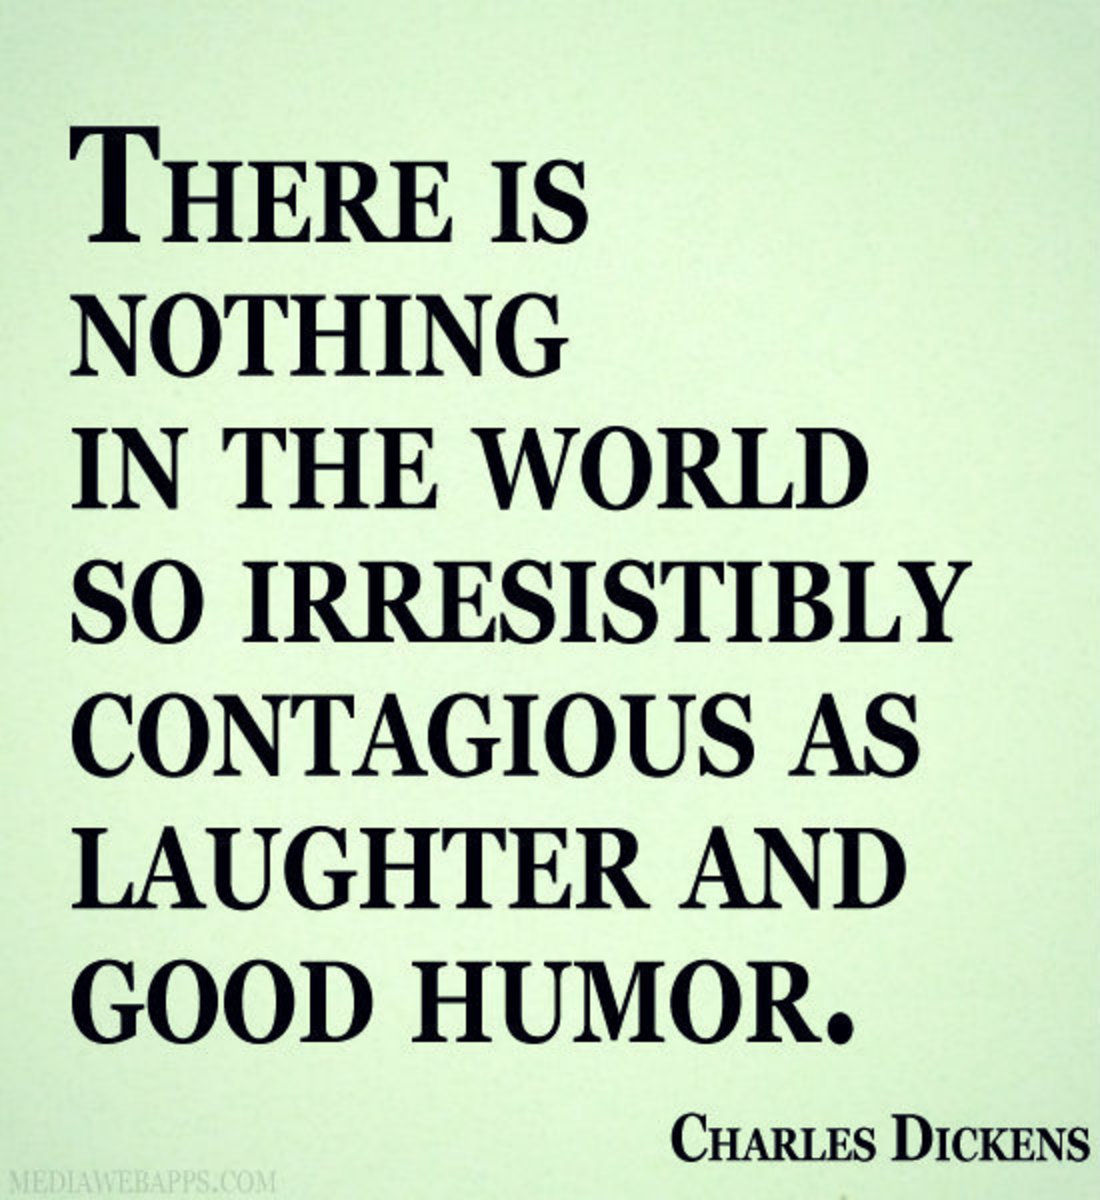 laughter-the-best-medicine-and-its-free-and-contagious